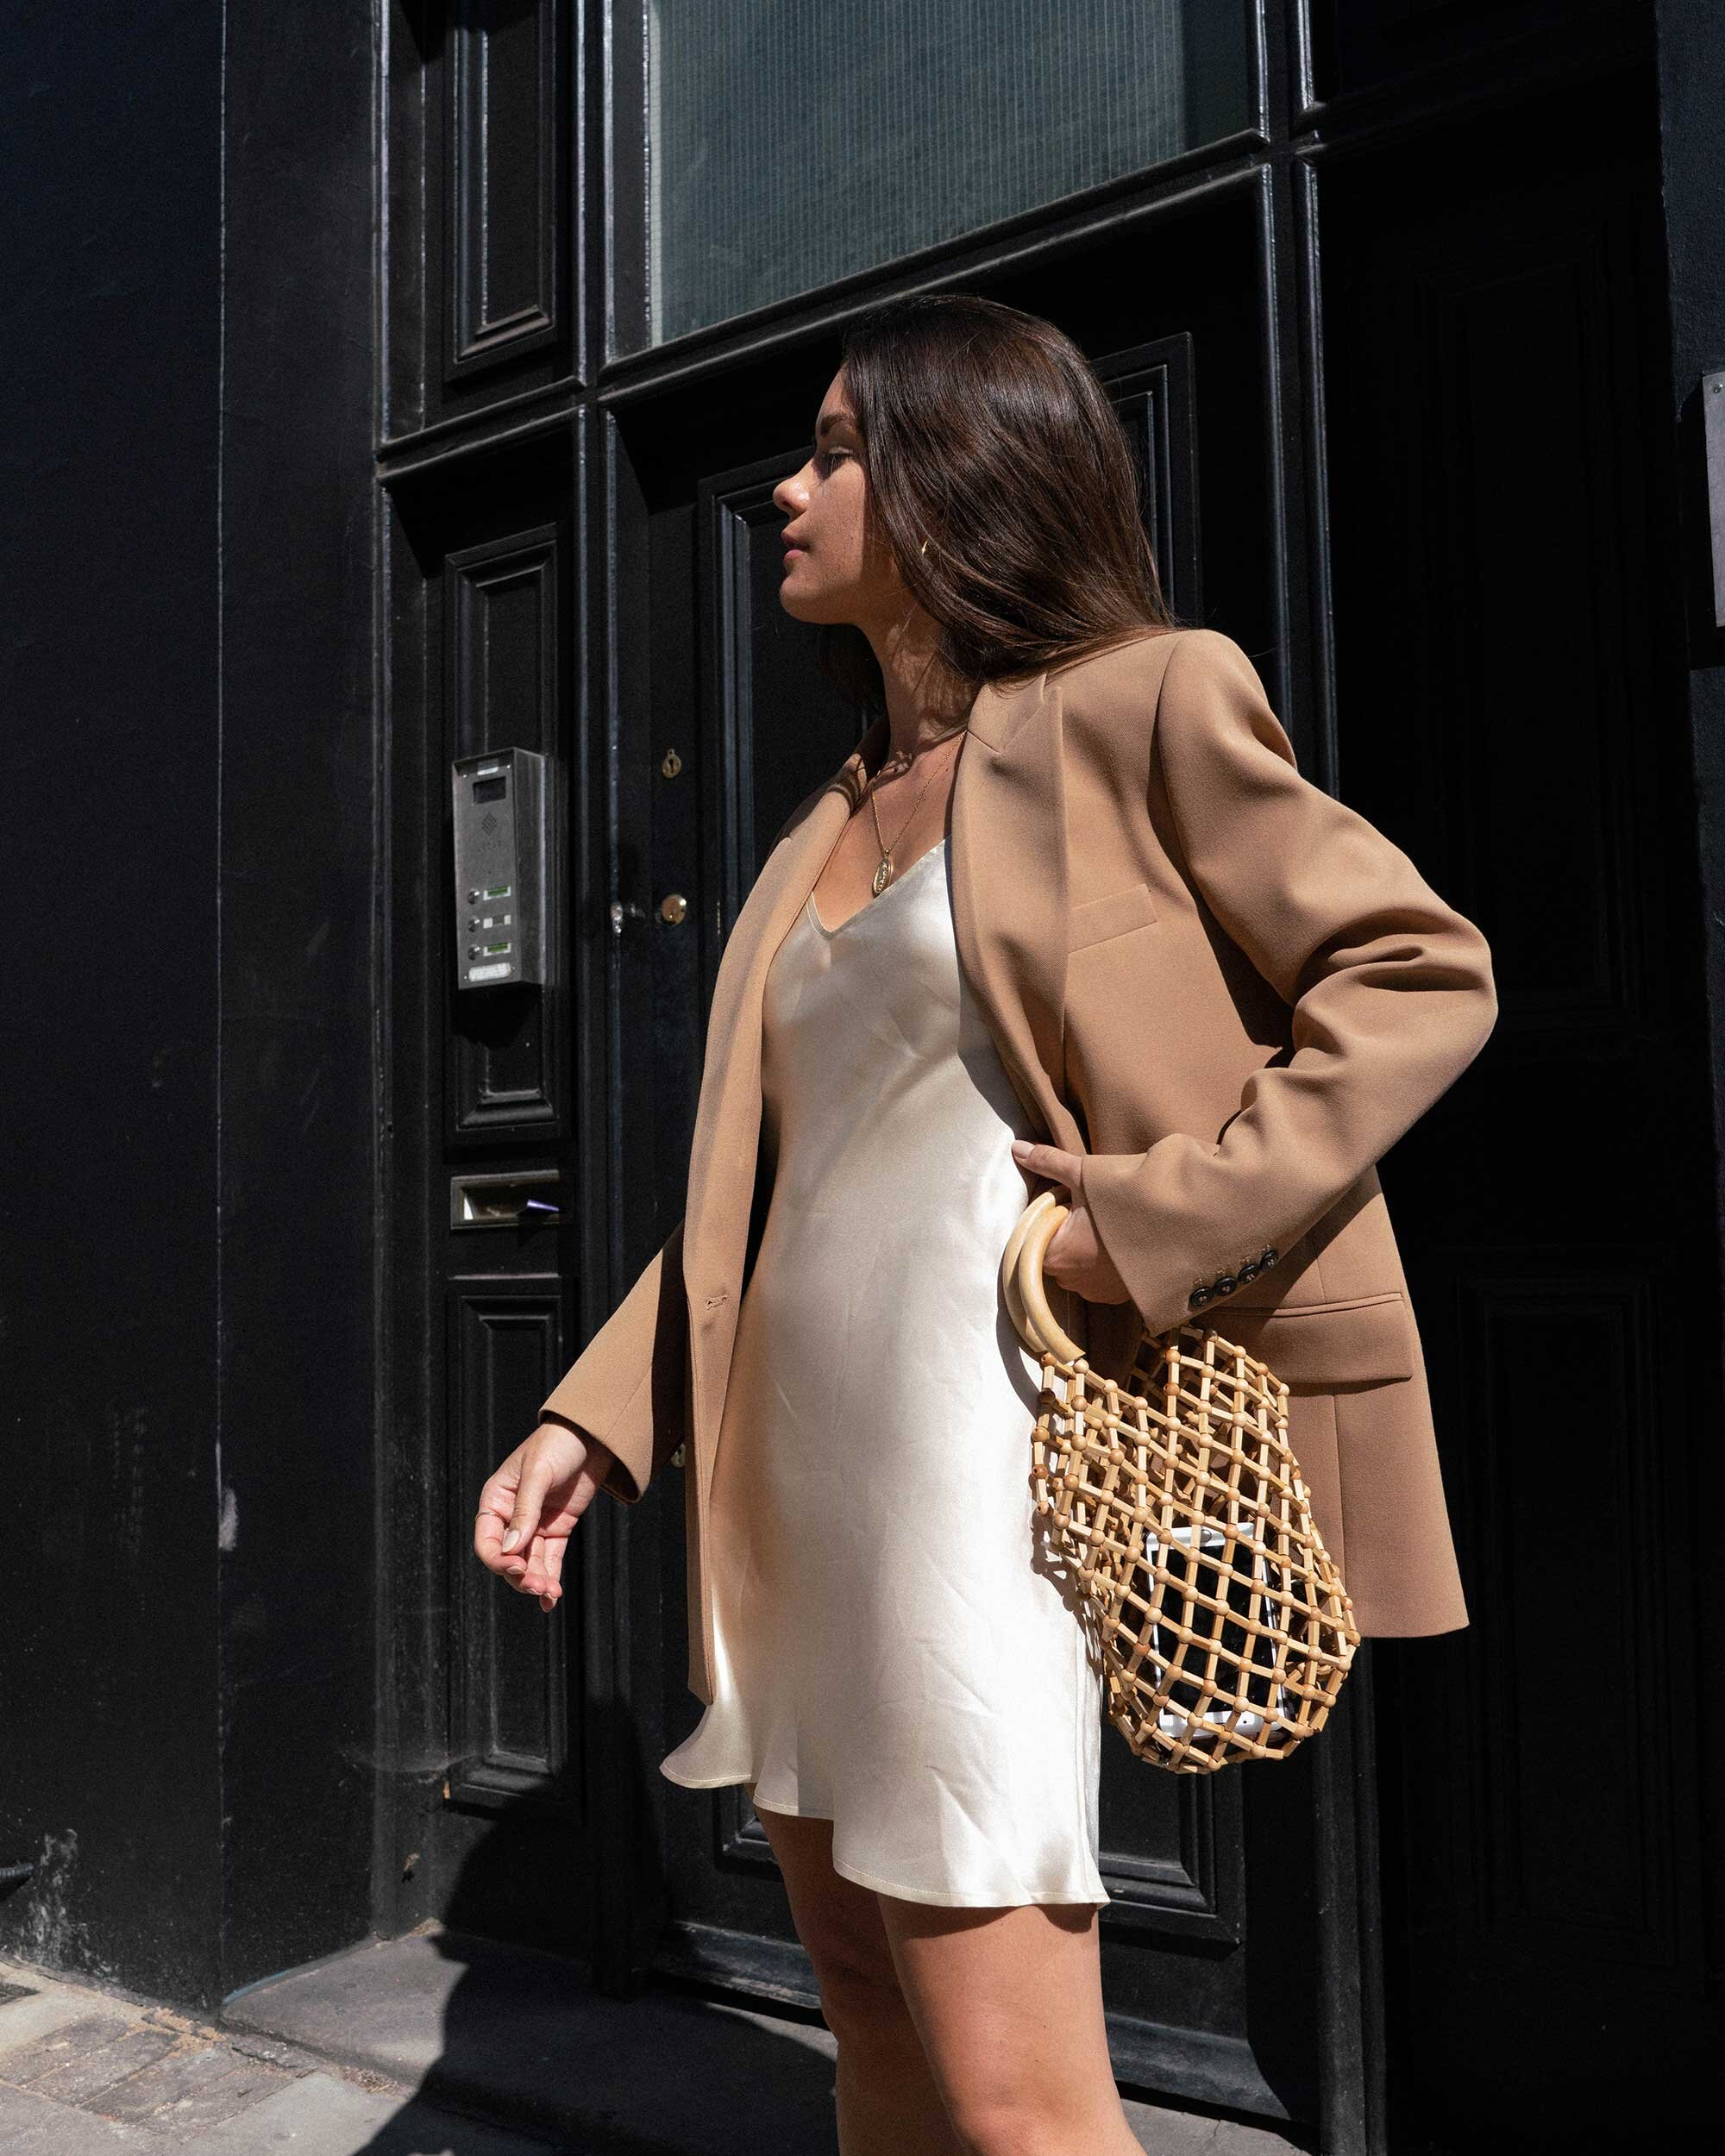 Blazer Weather - Out in London wearing ivory slip dress and tan blazer for the perfect fall outfit.